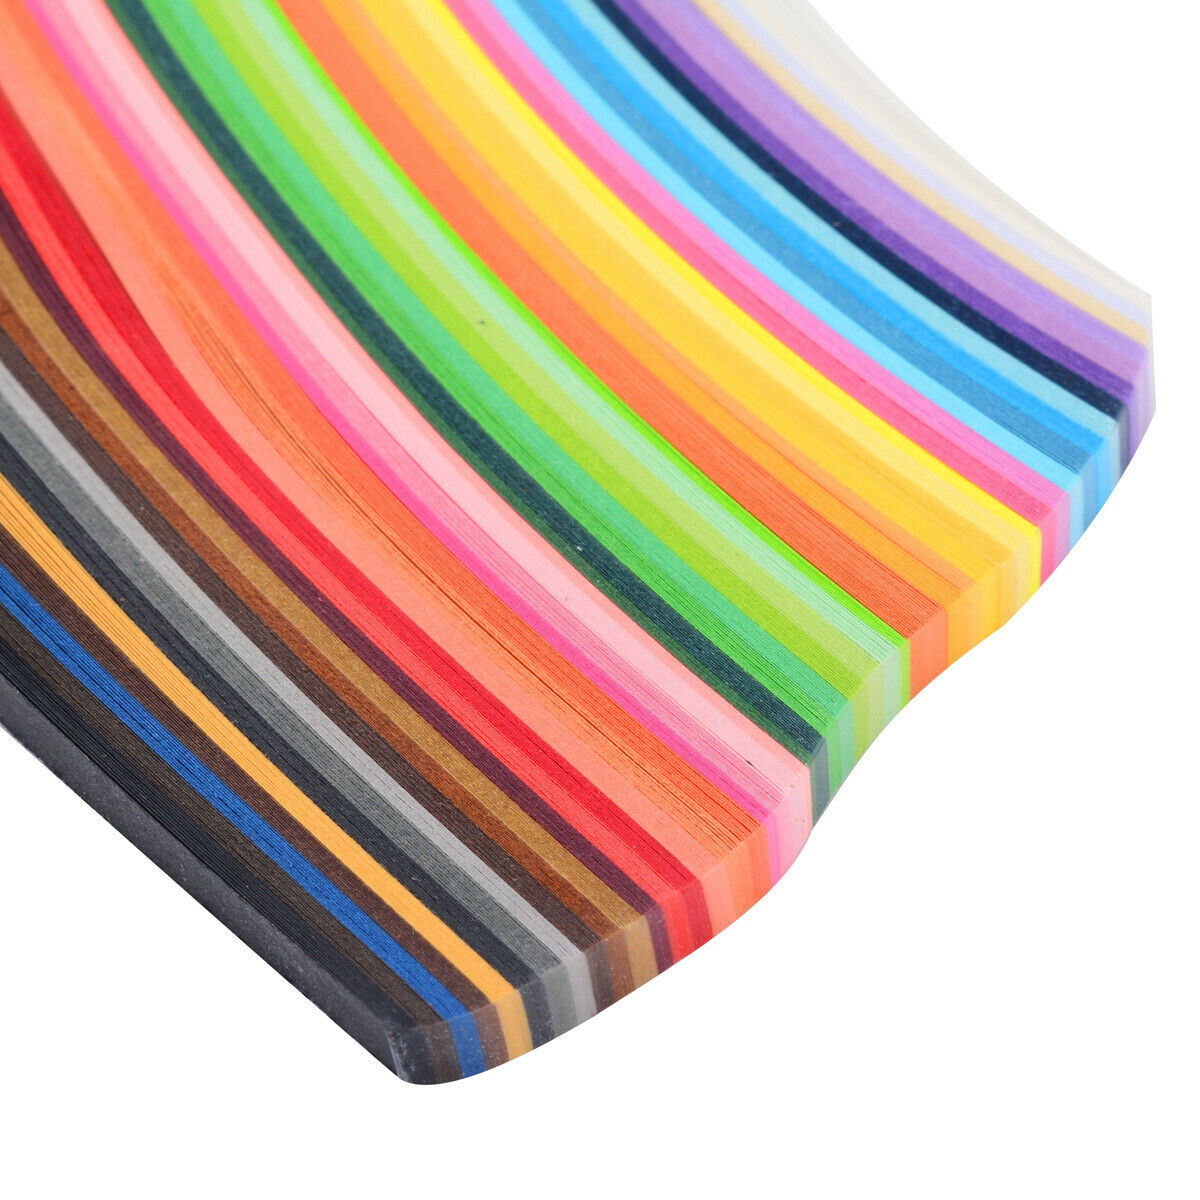 120 Stripes Quilling Paper 5mm Width Solid Color Origami Paper New Hand Crafting